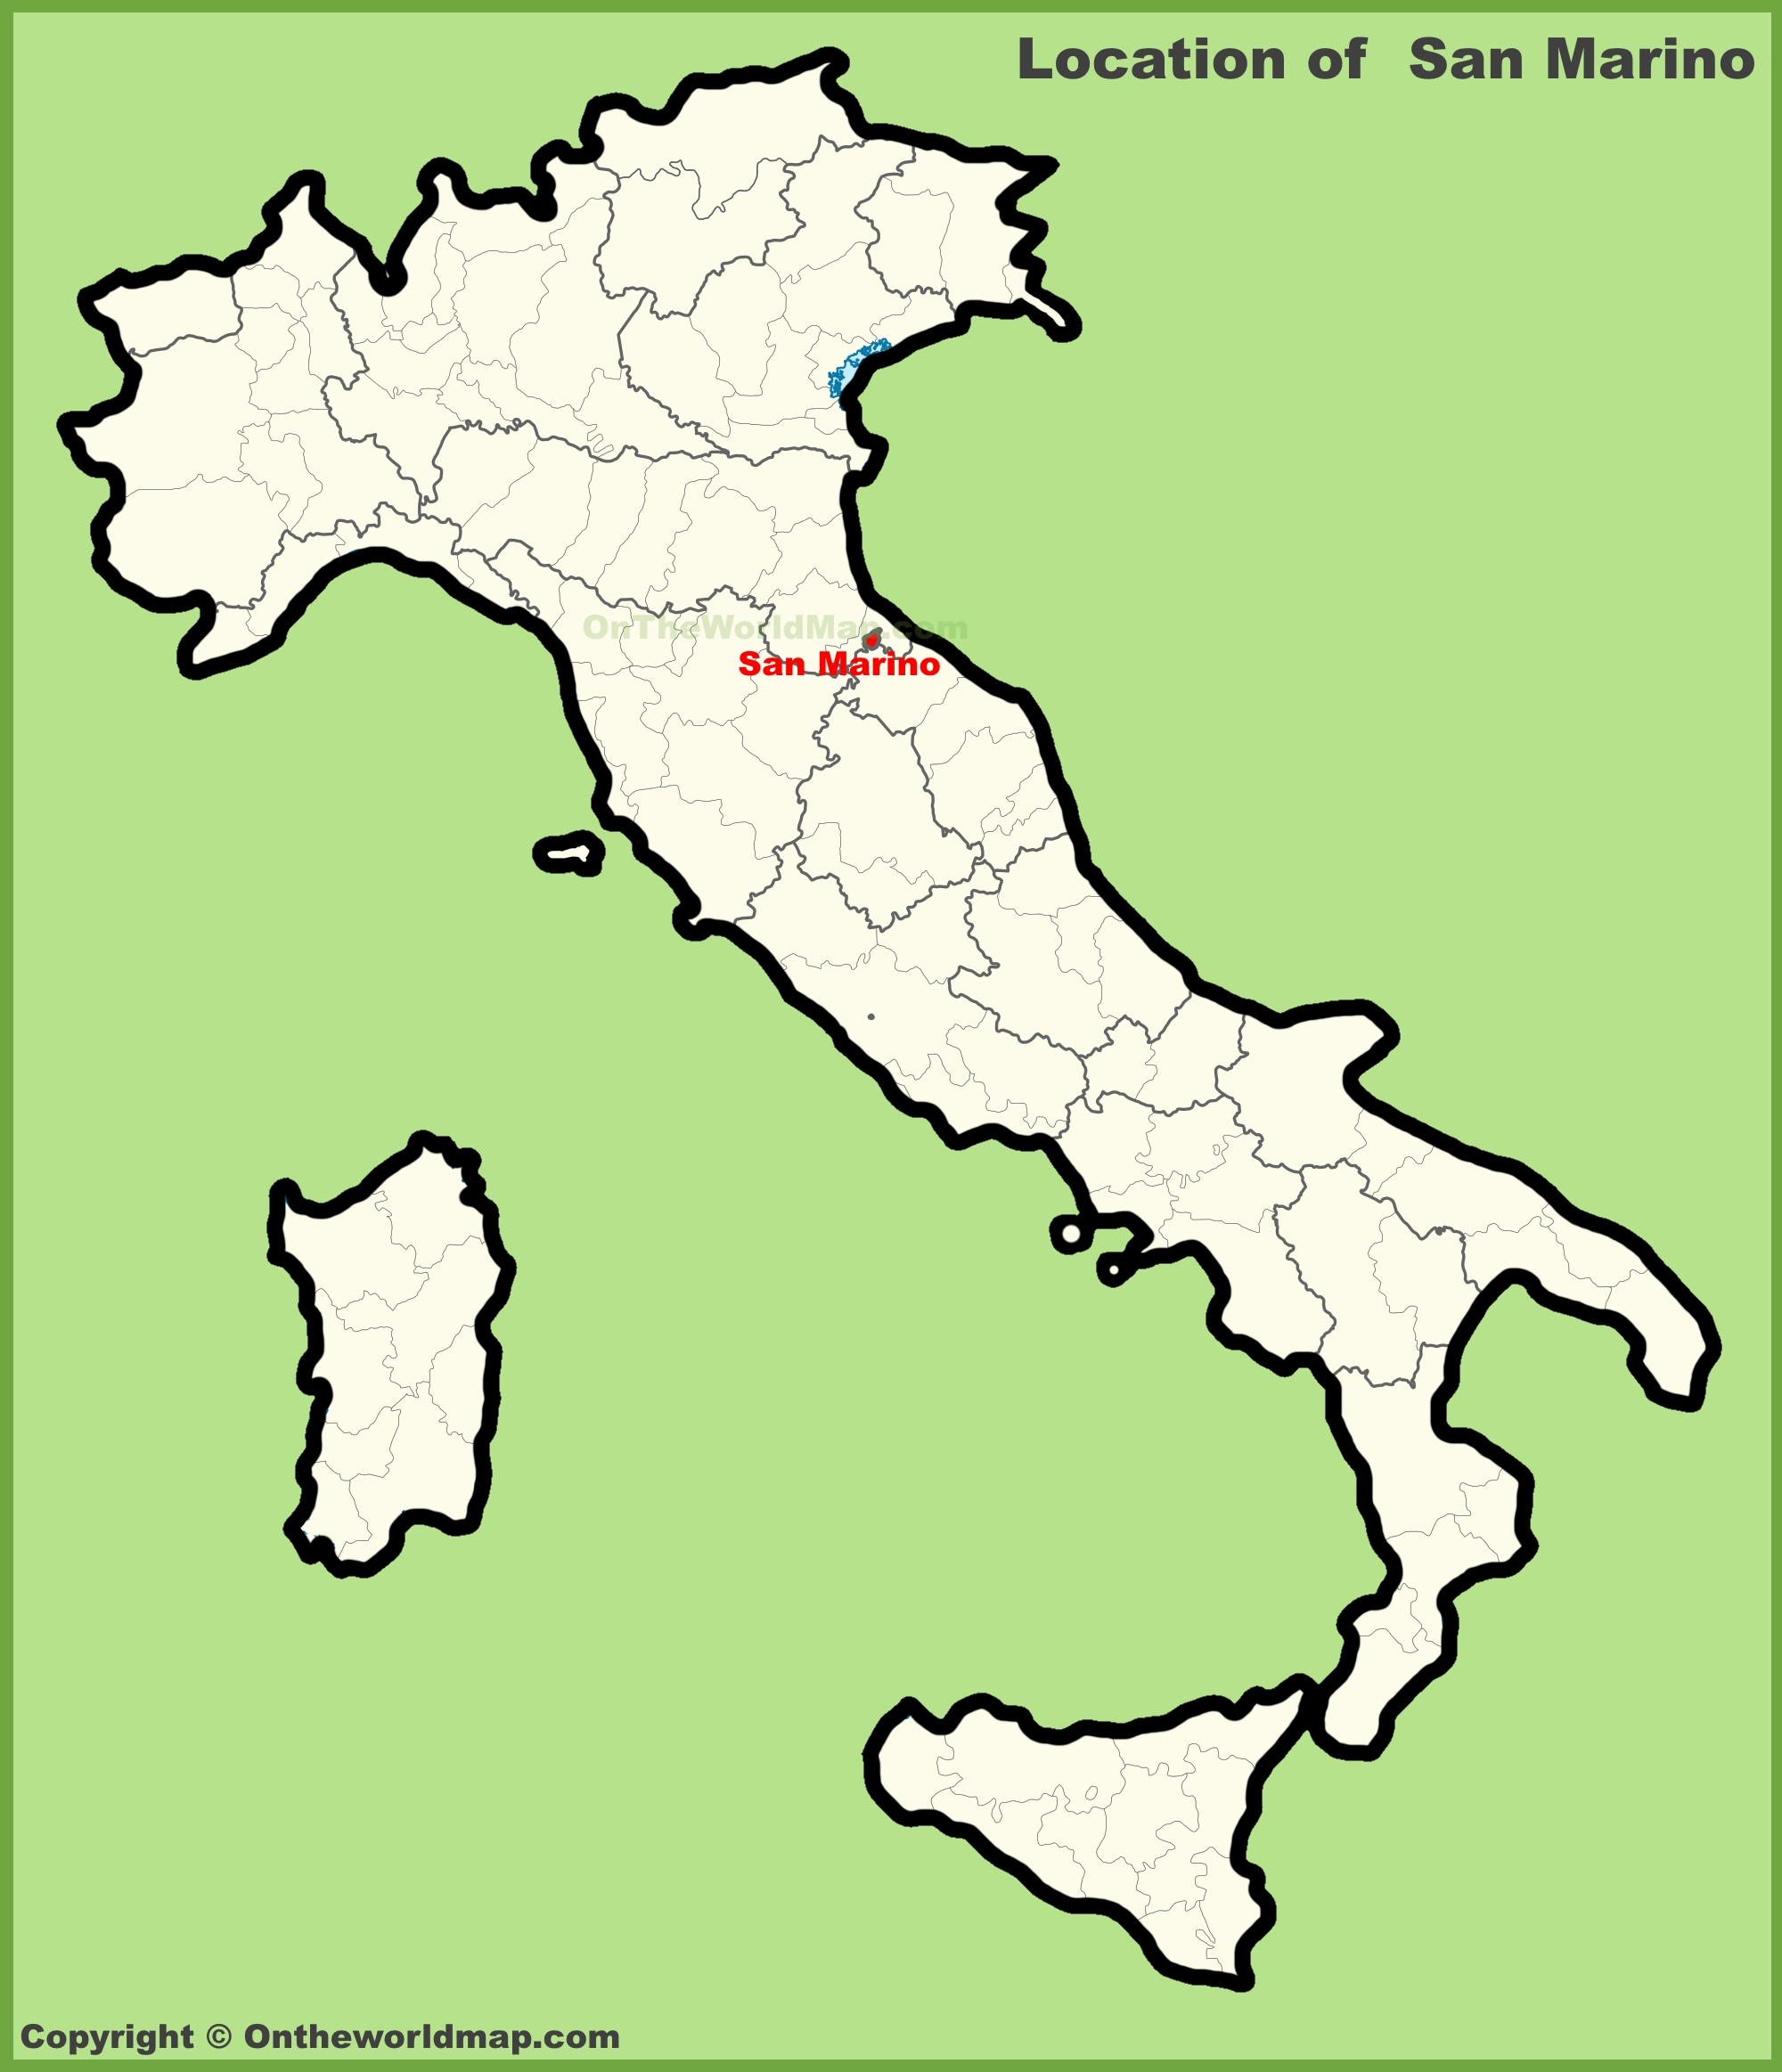 San Marino location on the map of Italy on sao tome map, slovakia map, saint kitts and nevis, vatican map, poland map, montenegro map, papal states, serbia map, monaco map, american samoa map, reunion map, usa map, yugoslavia map, vatican city, marshall islands, enclave and exclave, landlocked country, wales map, switzerland map, malta map, faroe islands, seychelles map, italy map, luxembourg map, sweden map, slovenia map, andorra map,